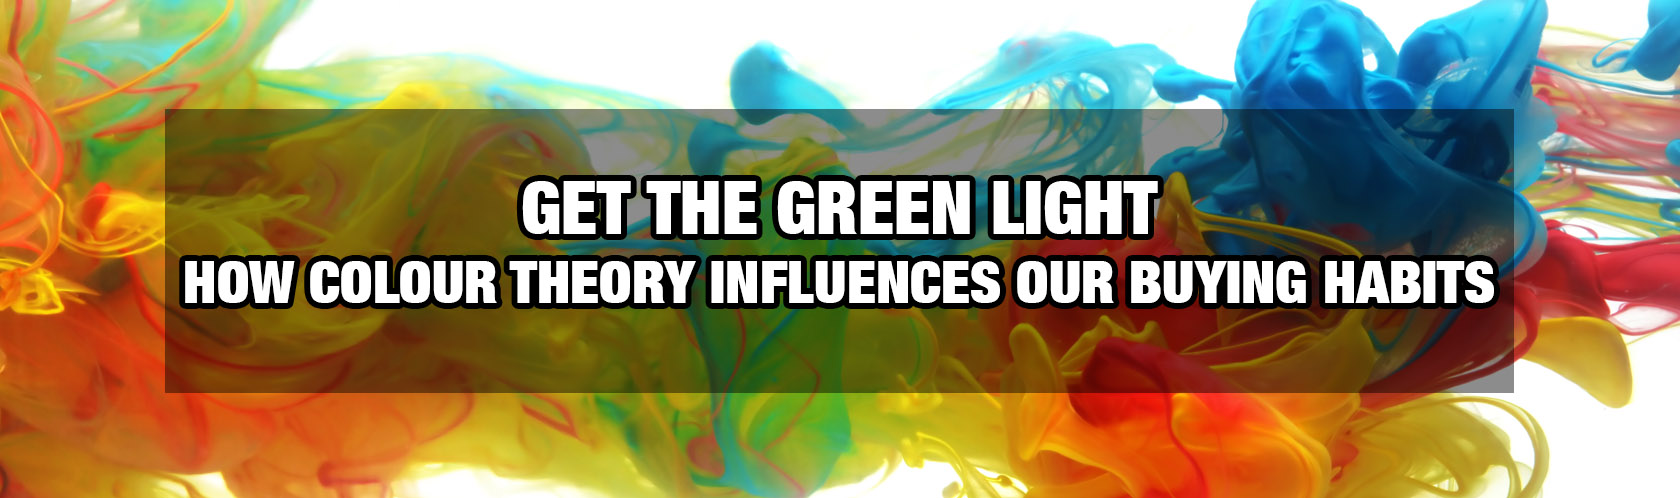 Get The Green Light - How Colour Theory Influences Our Buying Habits